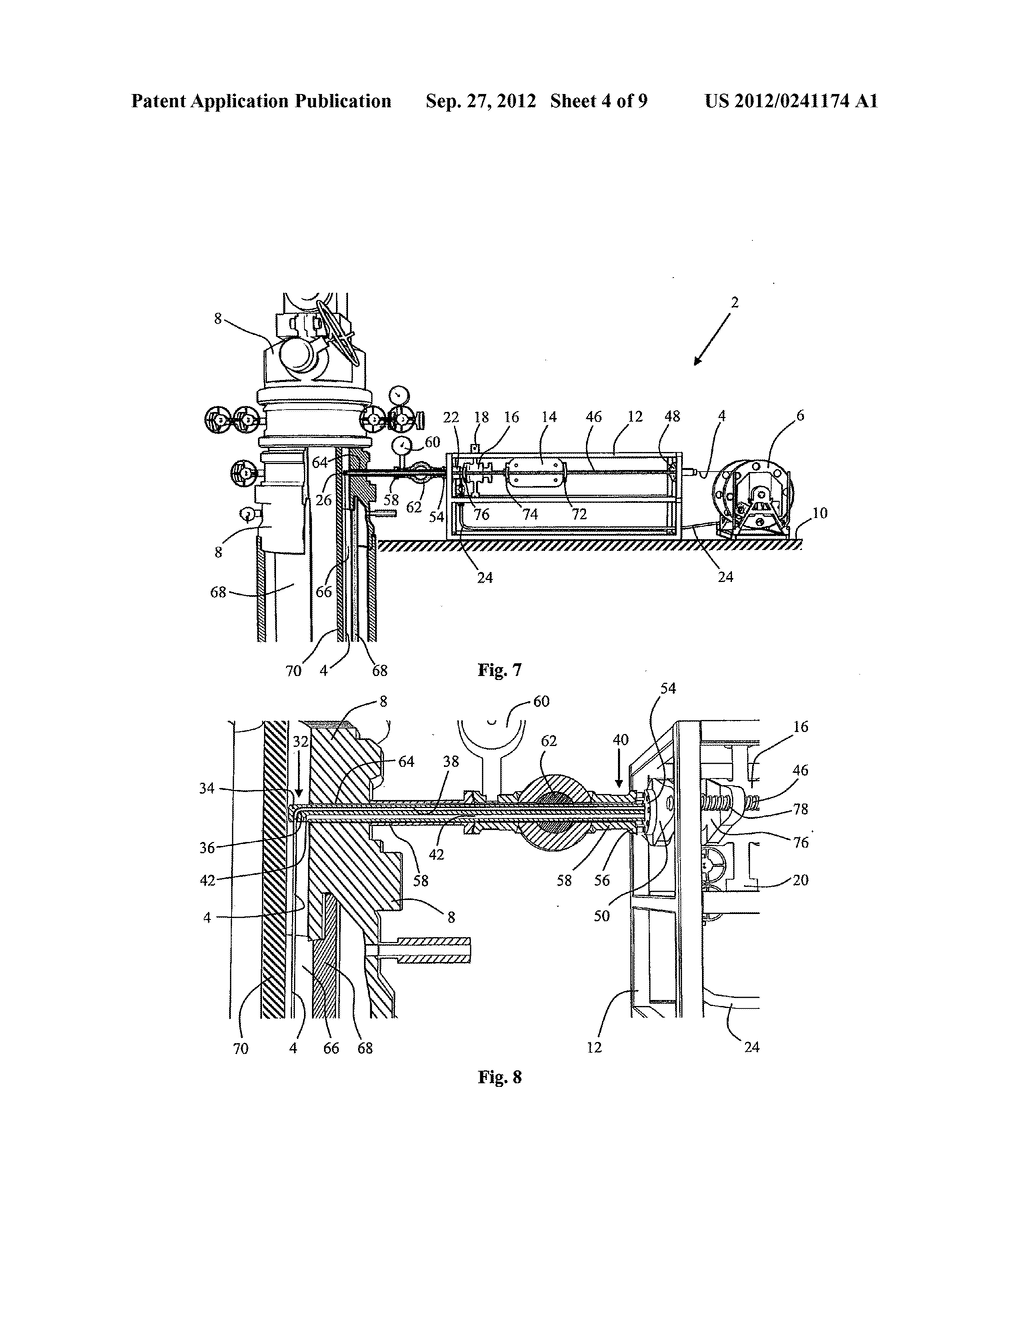 INJECTION MODULE, METHOD FOR USE FOR LATERAL INSERTION AND BENDING OF A     COILED TUBING VIA A SIDE OPENING IN A WELL - diagram, schematic, and image 05